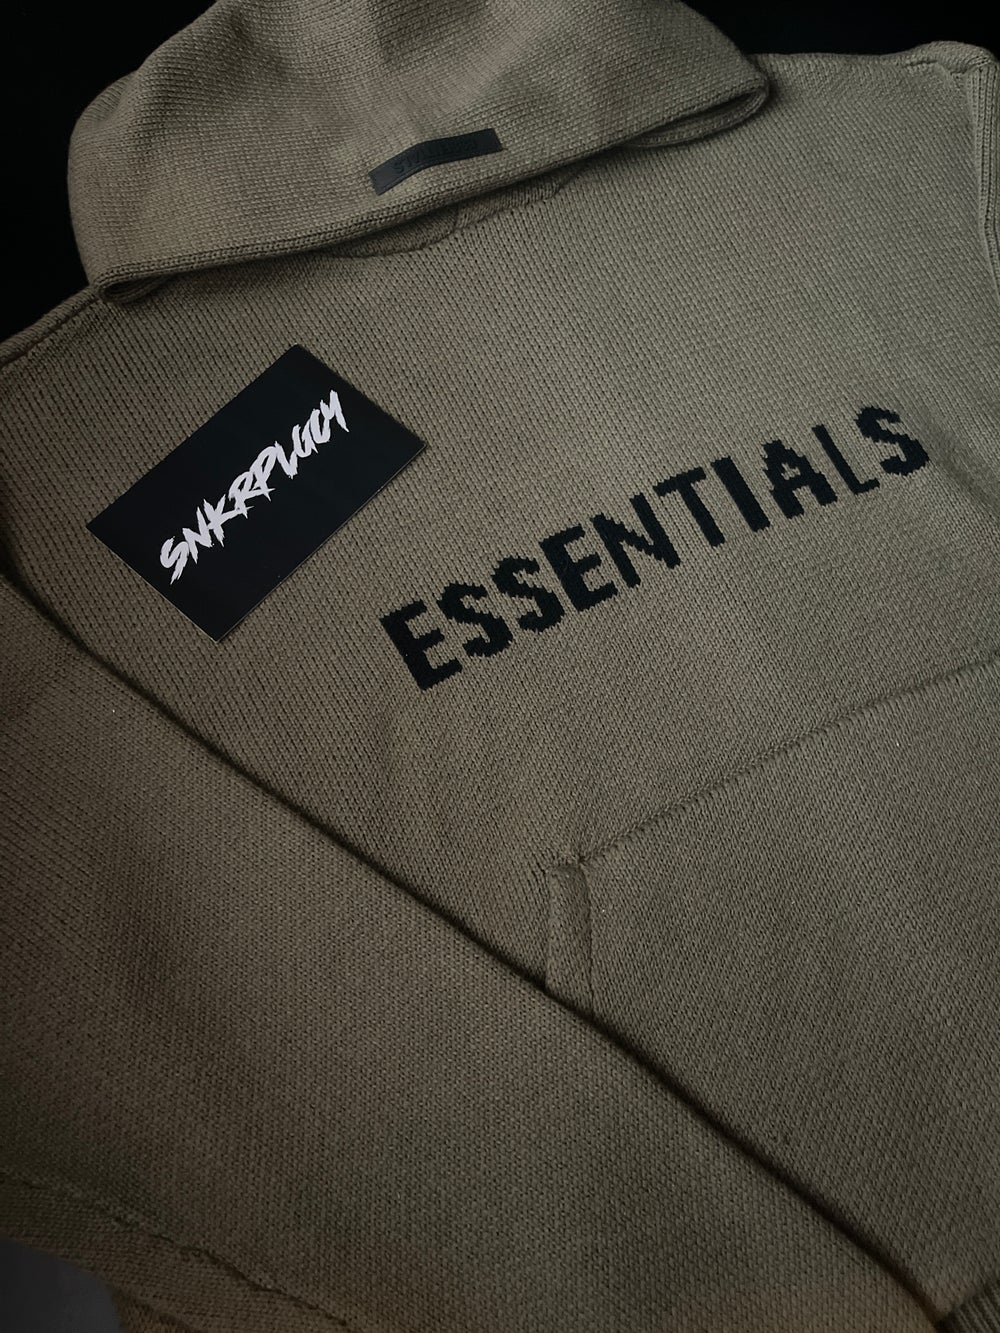 Fear Of God x ESSENTIALS / Harvest